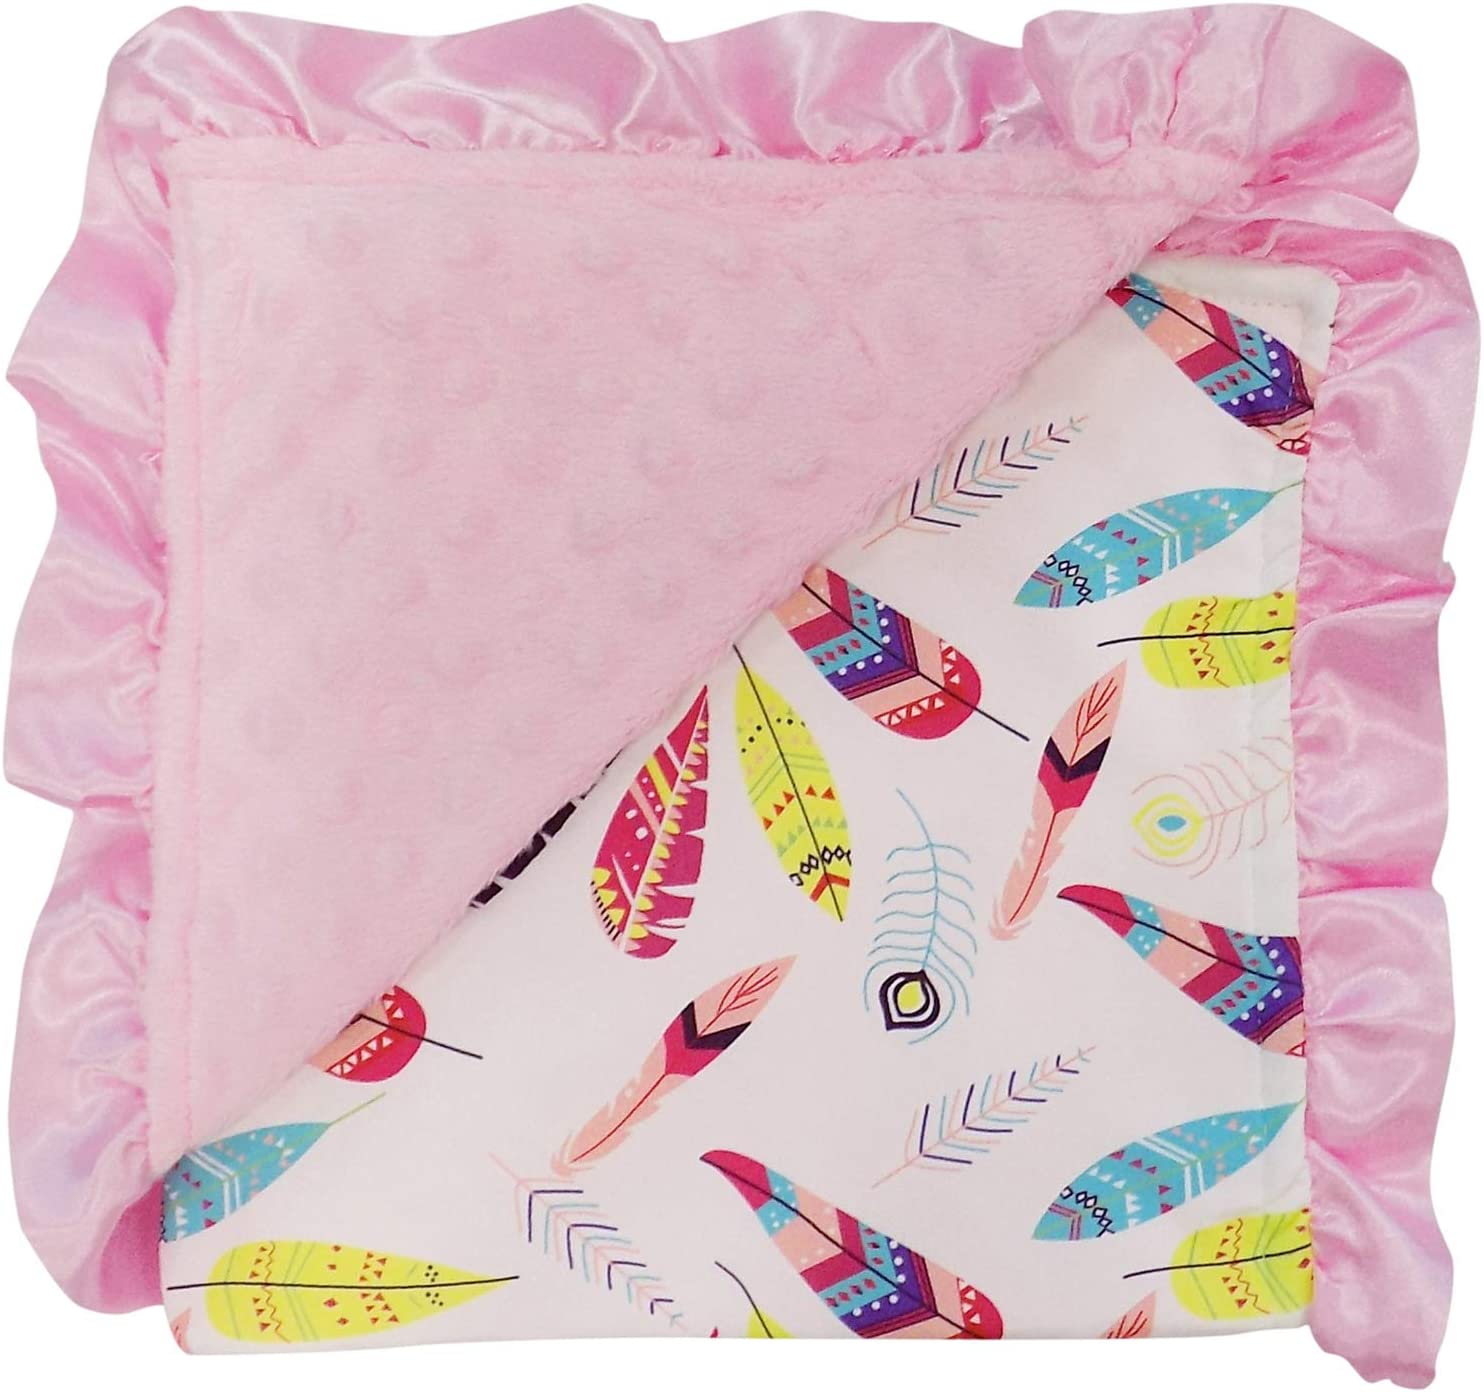 Feather Tribe So Sydney Reversible Soft Textured Minky Dot Baby Infant Toddler Blanket with Satin Trim